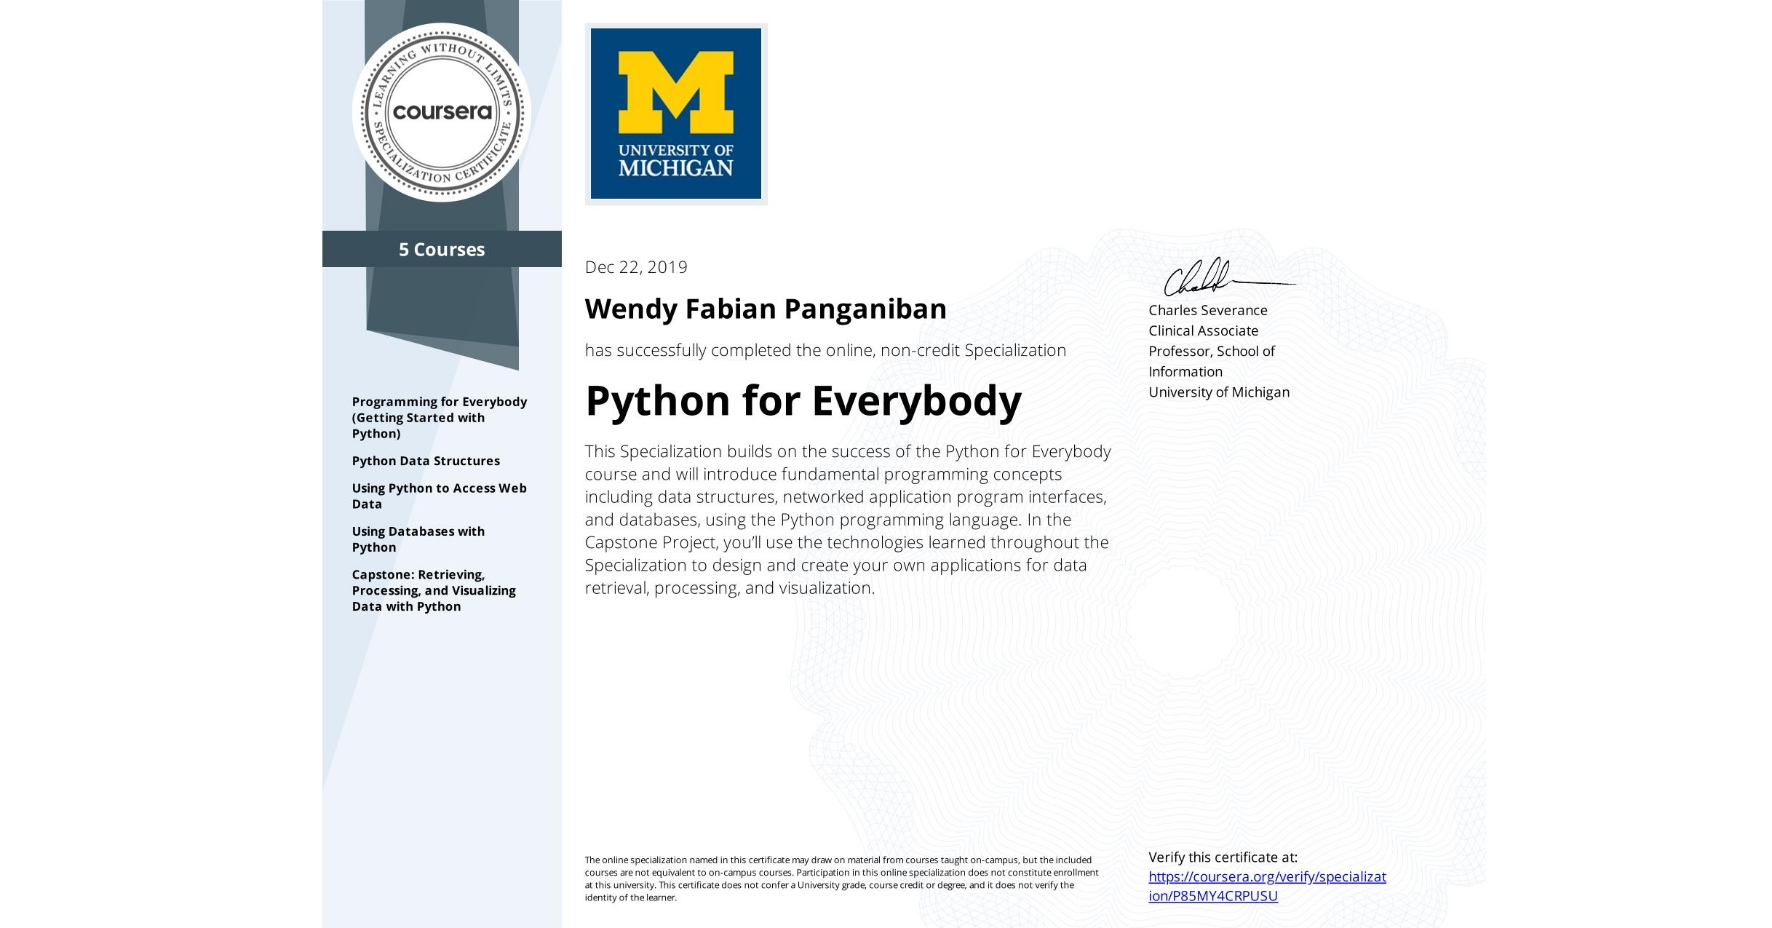 View certificate for Wendy Fabian Panganiban, Python for Everybody, offered through Coursera. This Specialization builds on the success of the Python for Everybody course and will introduce fundamental programming concepts including data structures, networked application program interfaces, and databases, using the Python programming language. In the Capstone Project, you'll use the technologies learned throughout the Specialization to design and create your own applications for data retrieval, processing, and visualization.